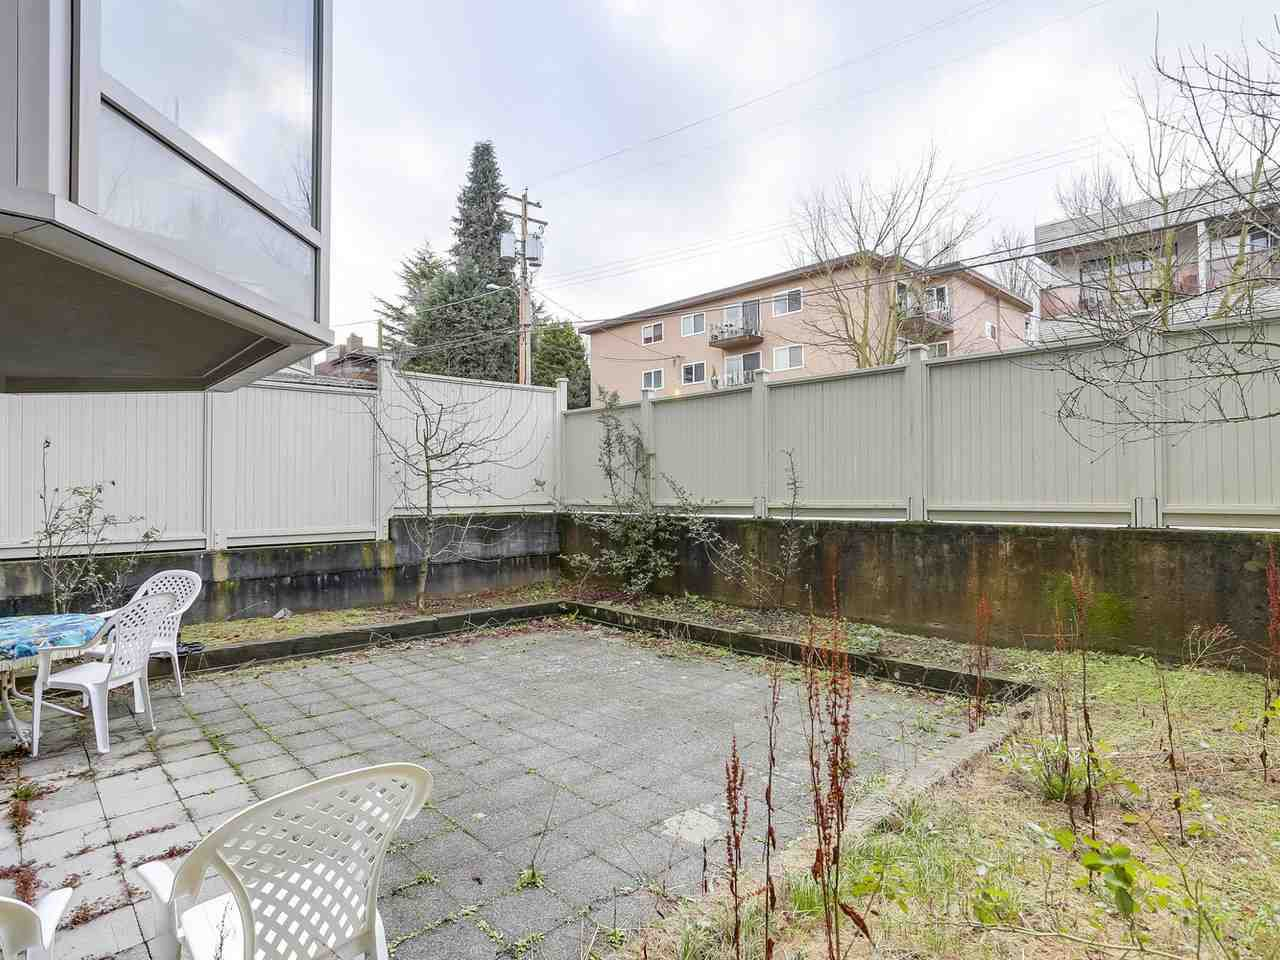 """Main Photo: 108 2238 ETON Street in Vancouver: Hastings Condo for sale in """"ETON HEIGHTS"""" (Vancouver East)  : MLS®# R2235764"""